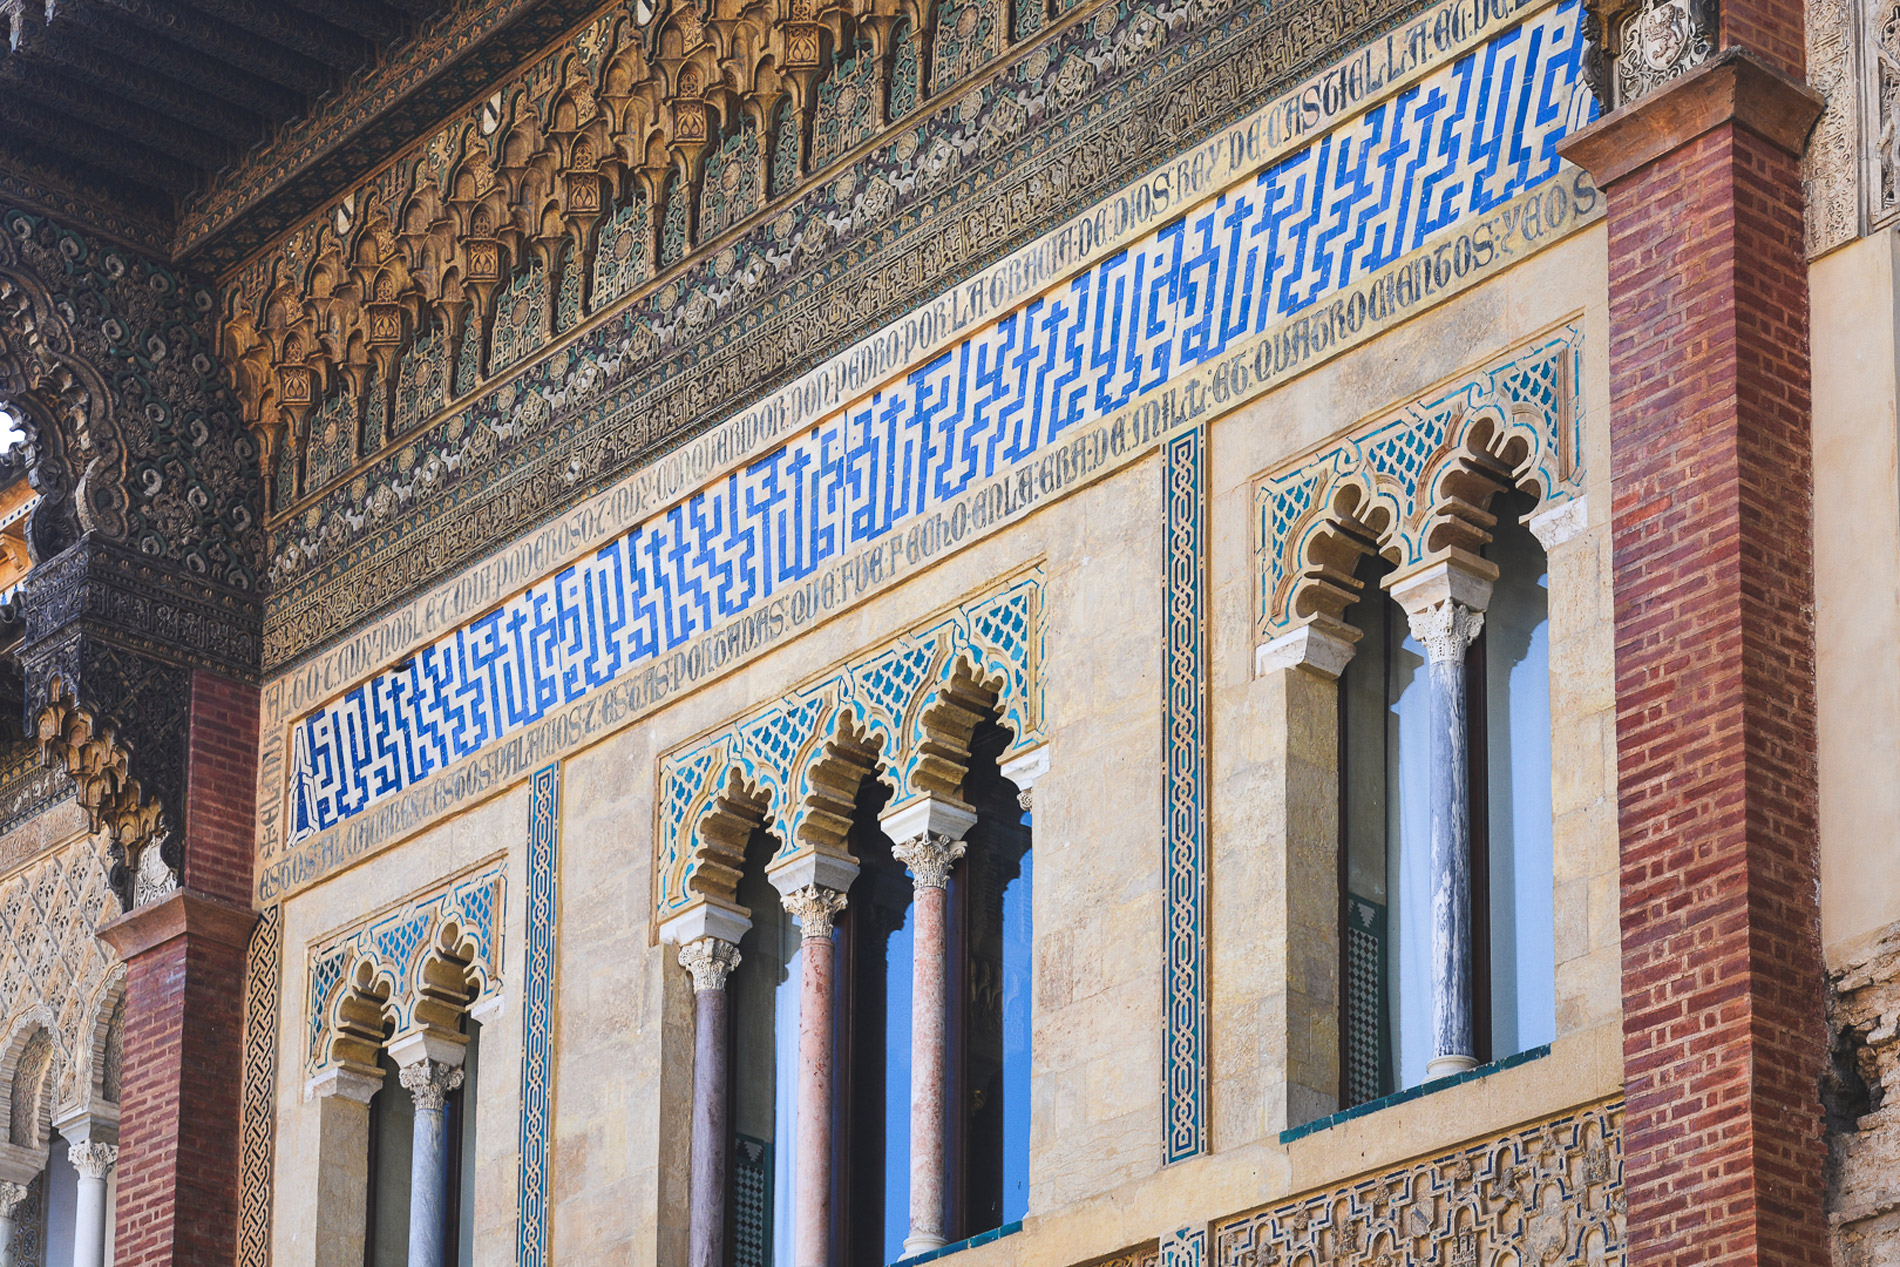 Details of the stunning Alcazar in Seville Spain